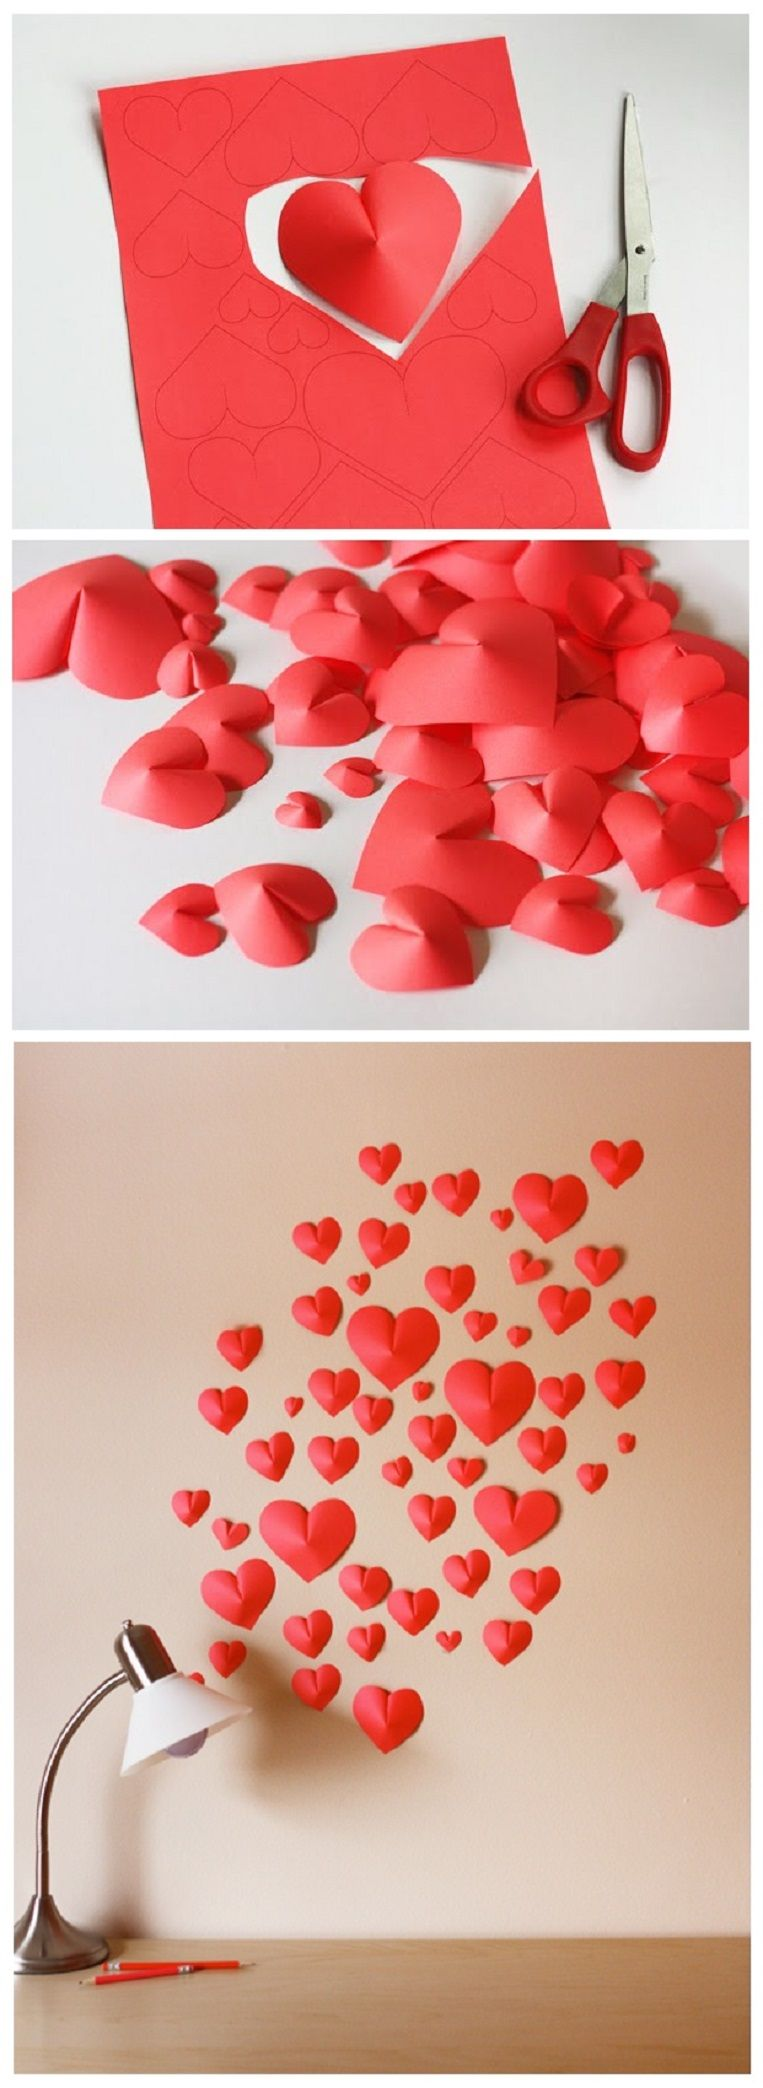 DIY Ideas for Valentines Day Easy